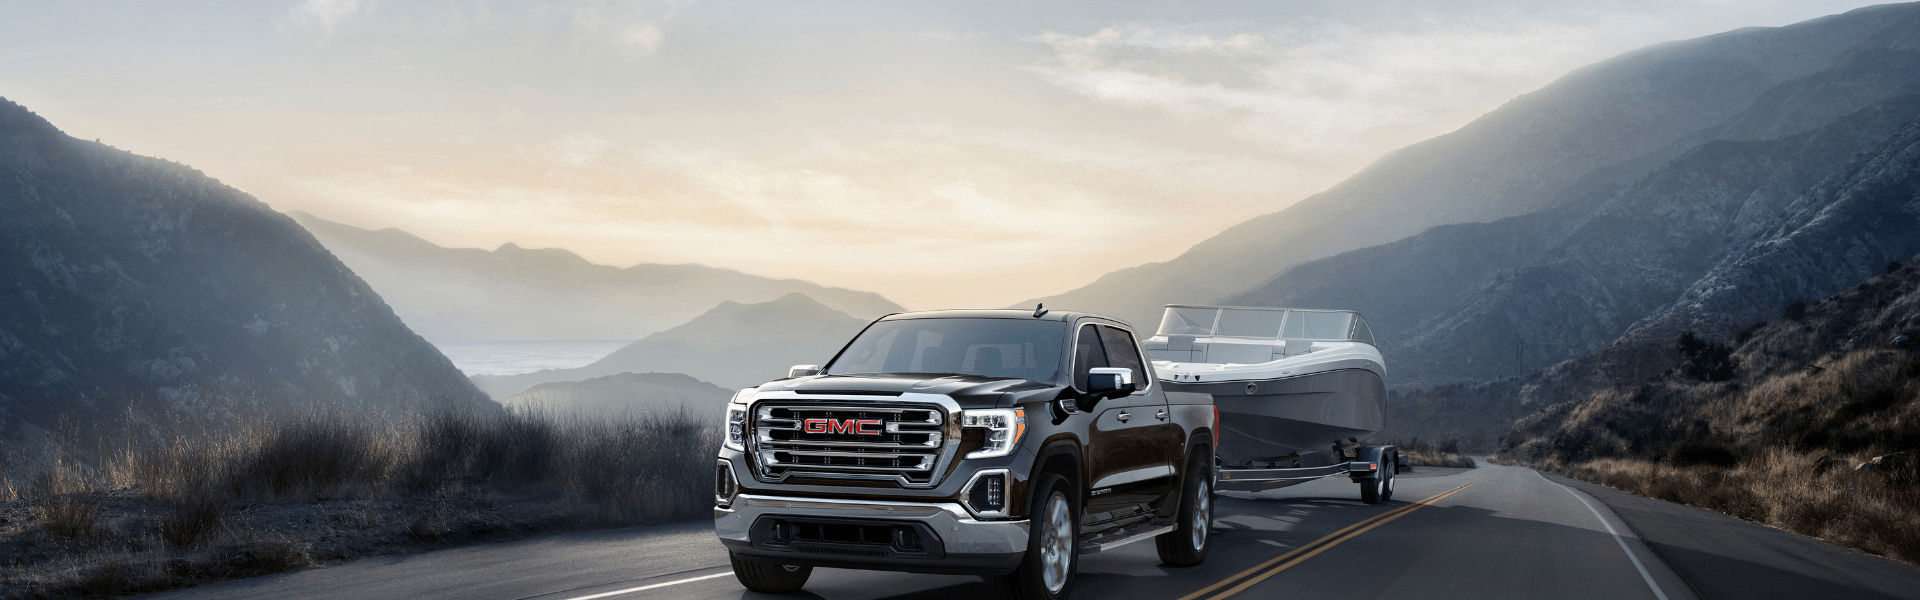 Western GMC Buick Careers Page